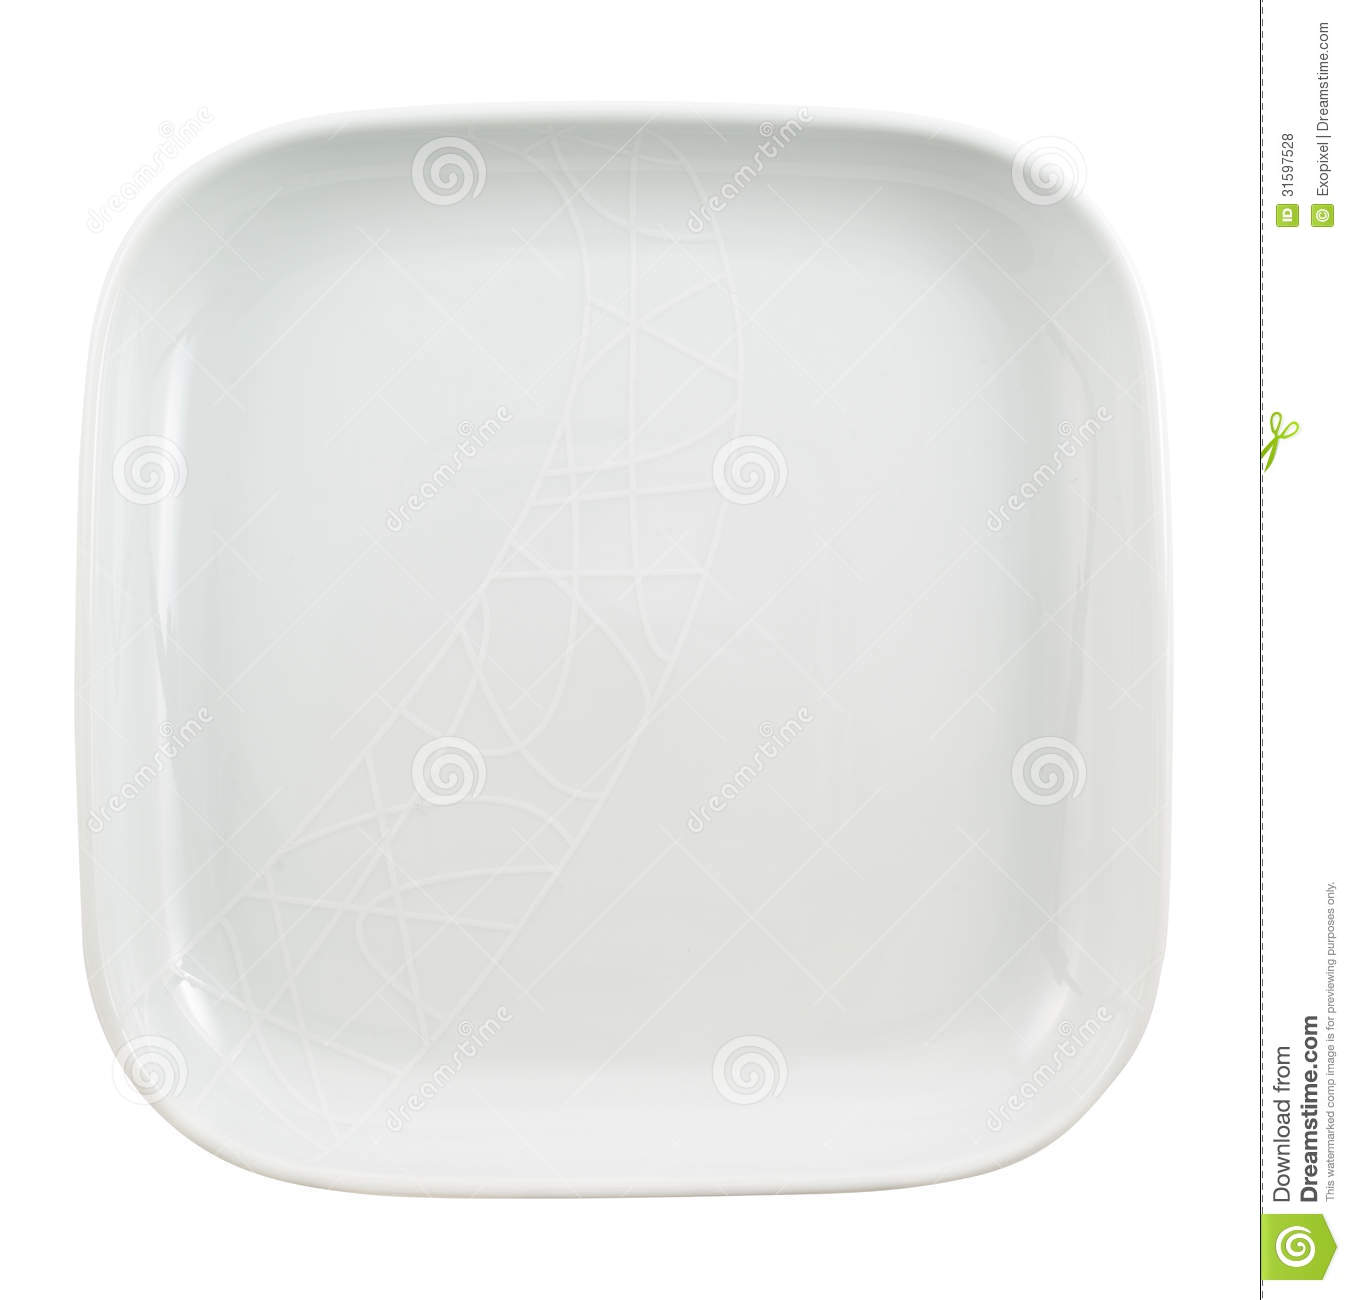 Square Shaped Empty Ceramic Plate Royalty Free Stock